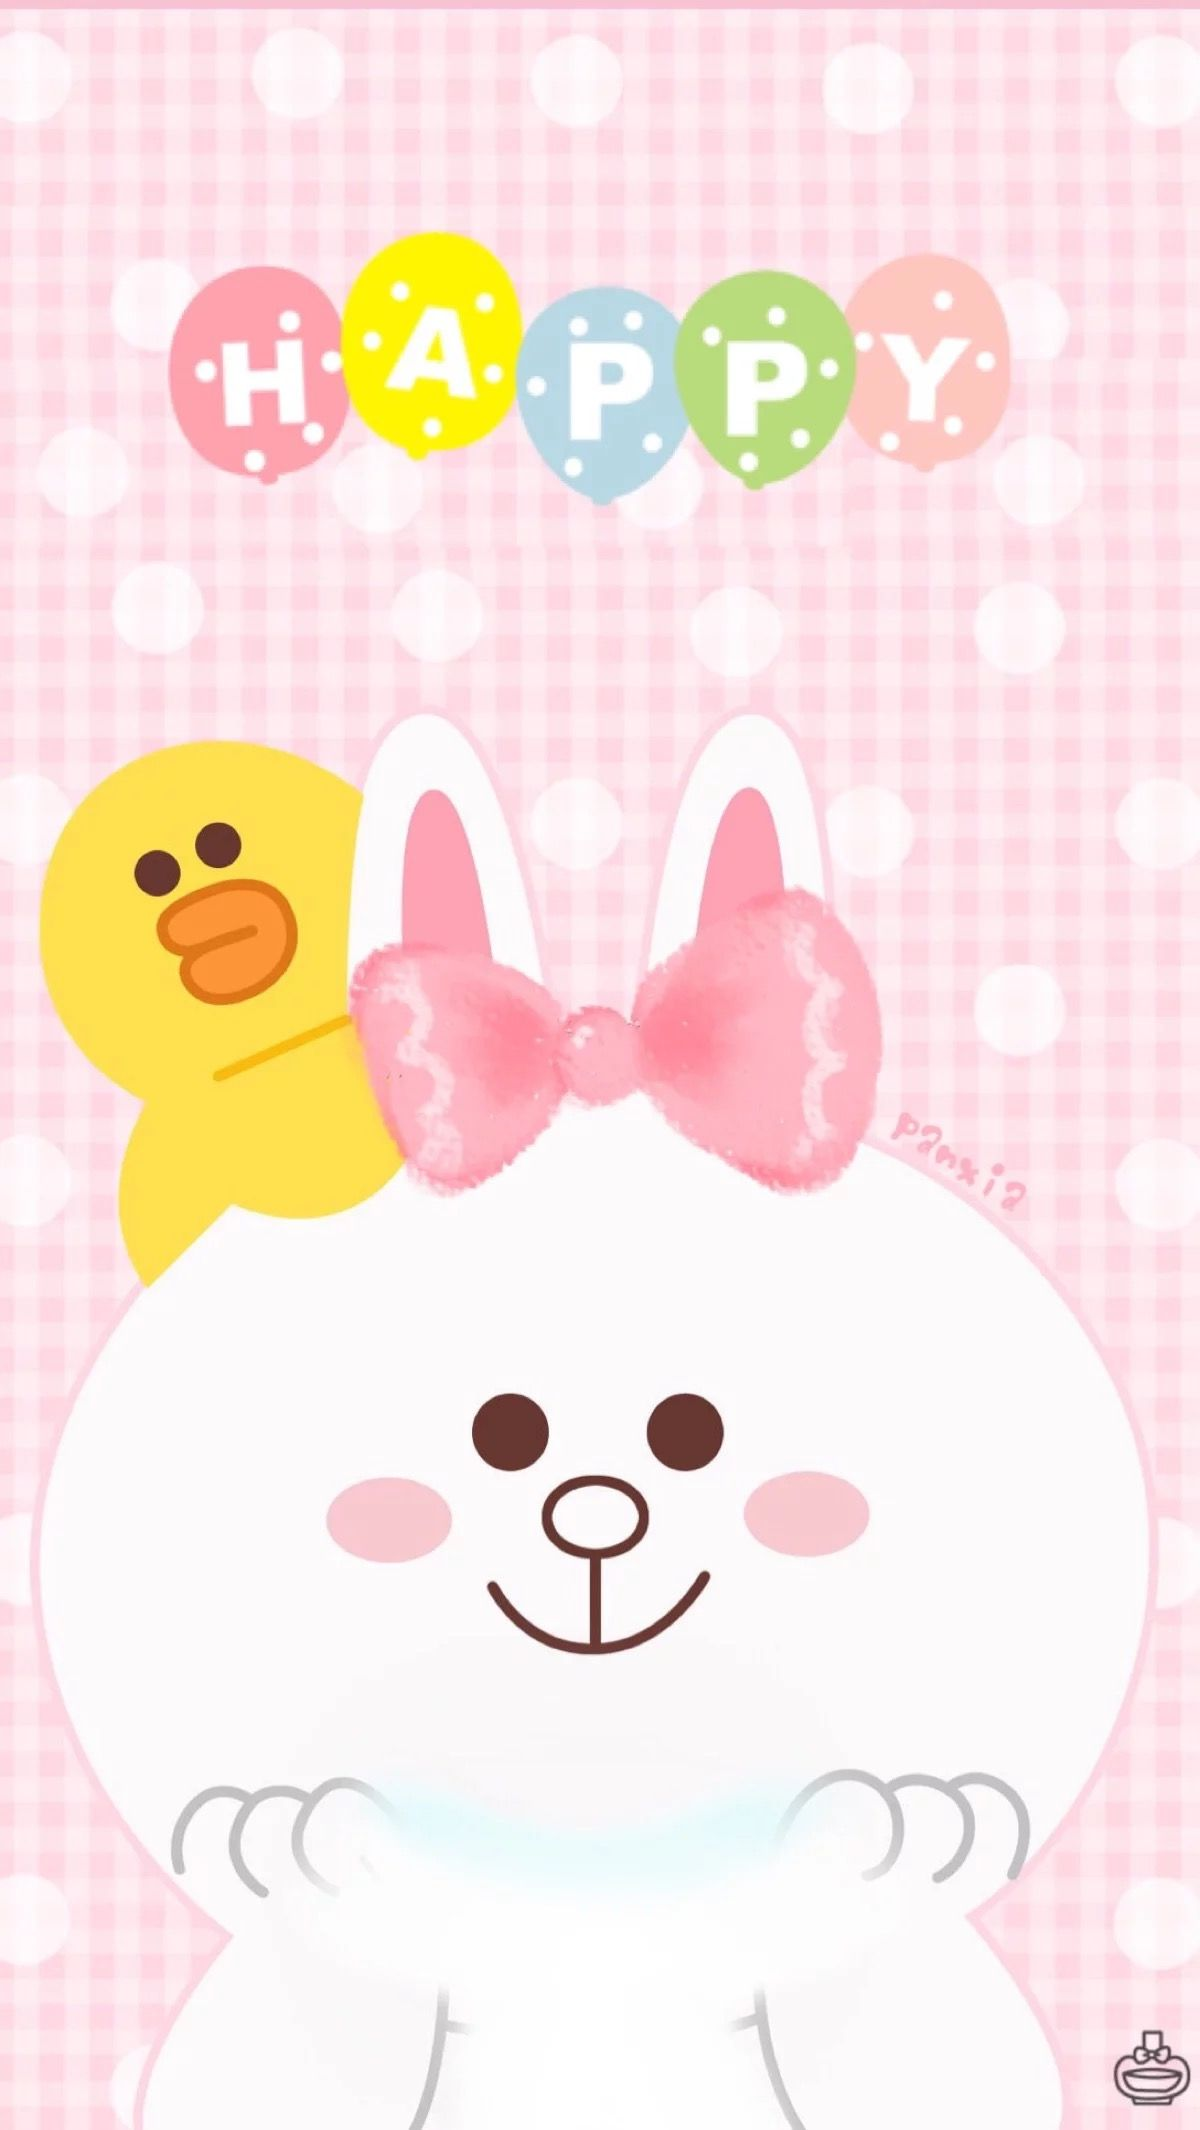 Popular Wallpaper Hello Kitty Friend - e8d8fb496e097825969ce445579b95d2  Trends_988916.jpg